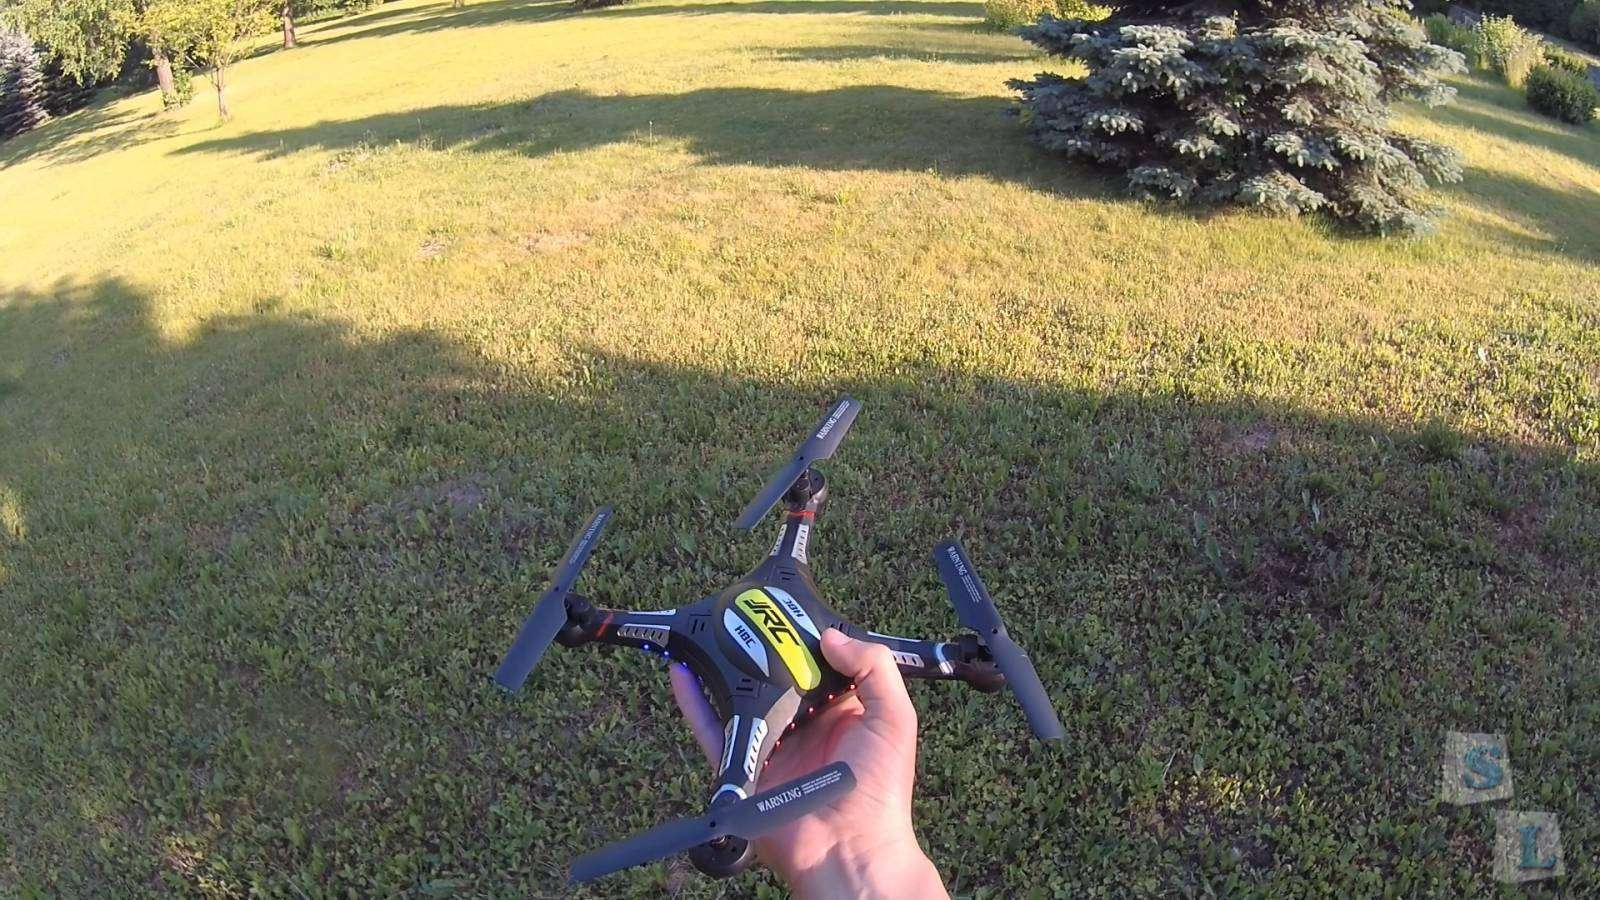 Banggood: JJRC H8C 2.4GHz, 4Ch, 6 Axis Gyro, RC Quadcopter with Headless Mode and 2MP Camera (RTF)